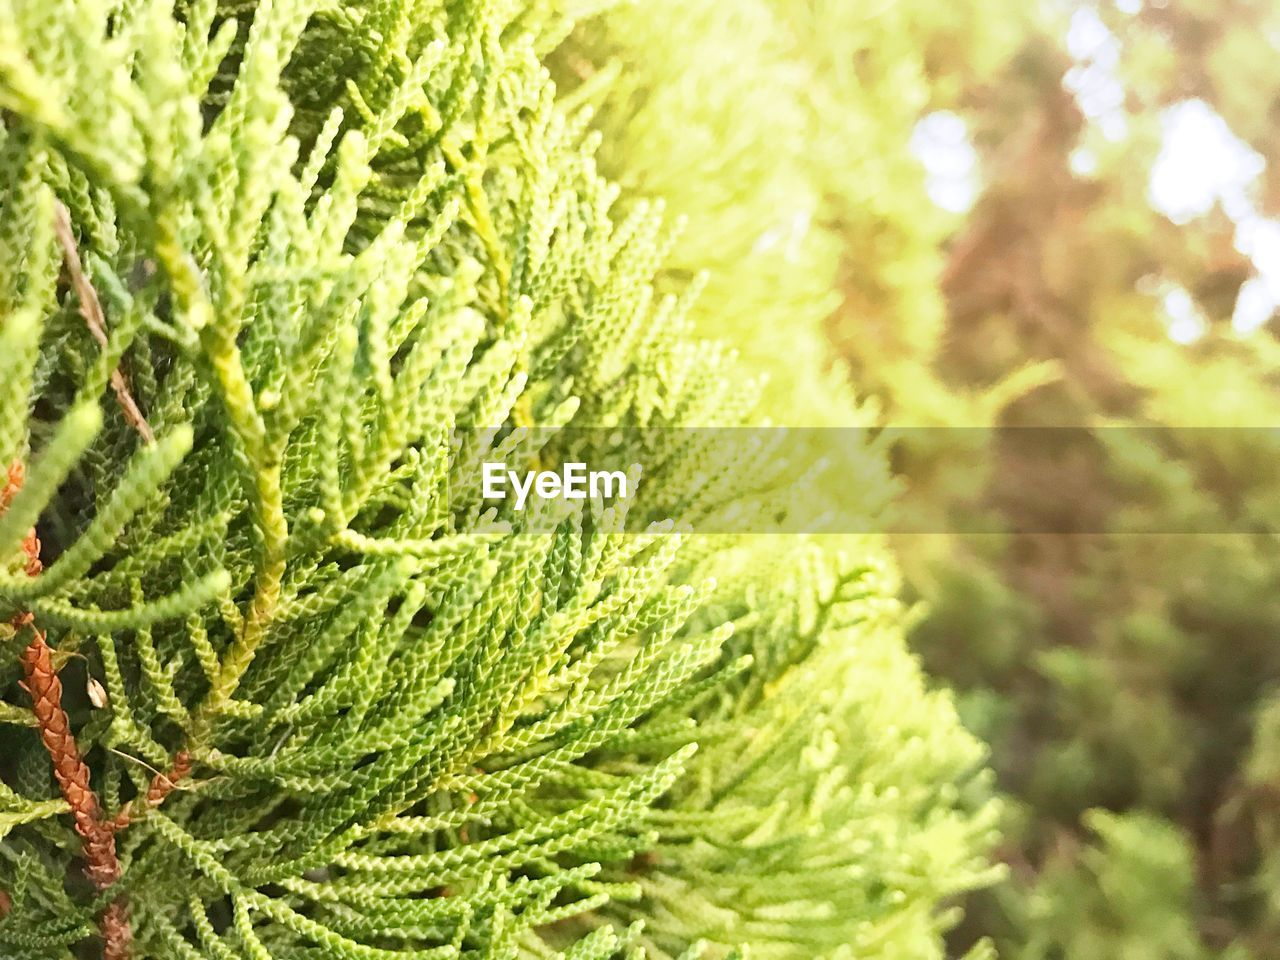 green color, plant, growth, beauty in nature, day, close-up, nature, leaf, no people, plant part, focus on foreground, tree, outdoors, freshness, selective focus, full frame, sunlight, tranquility, pine tree, green, coniferous tree, leaves, fir tree